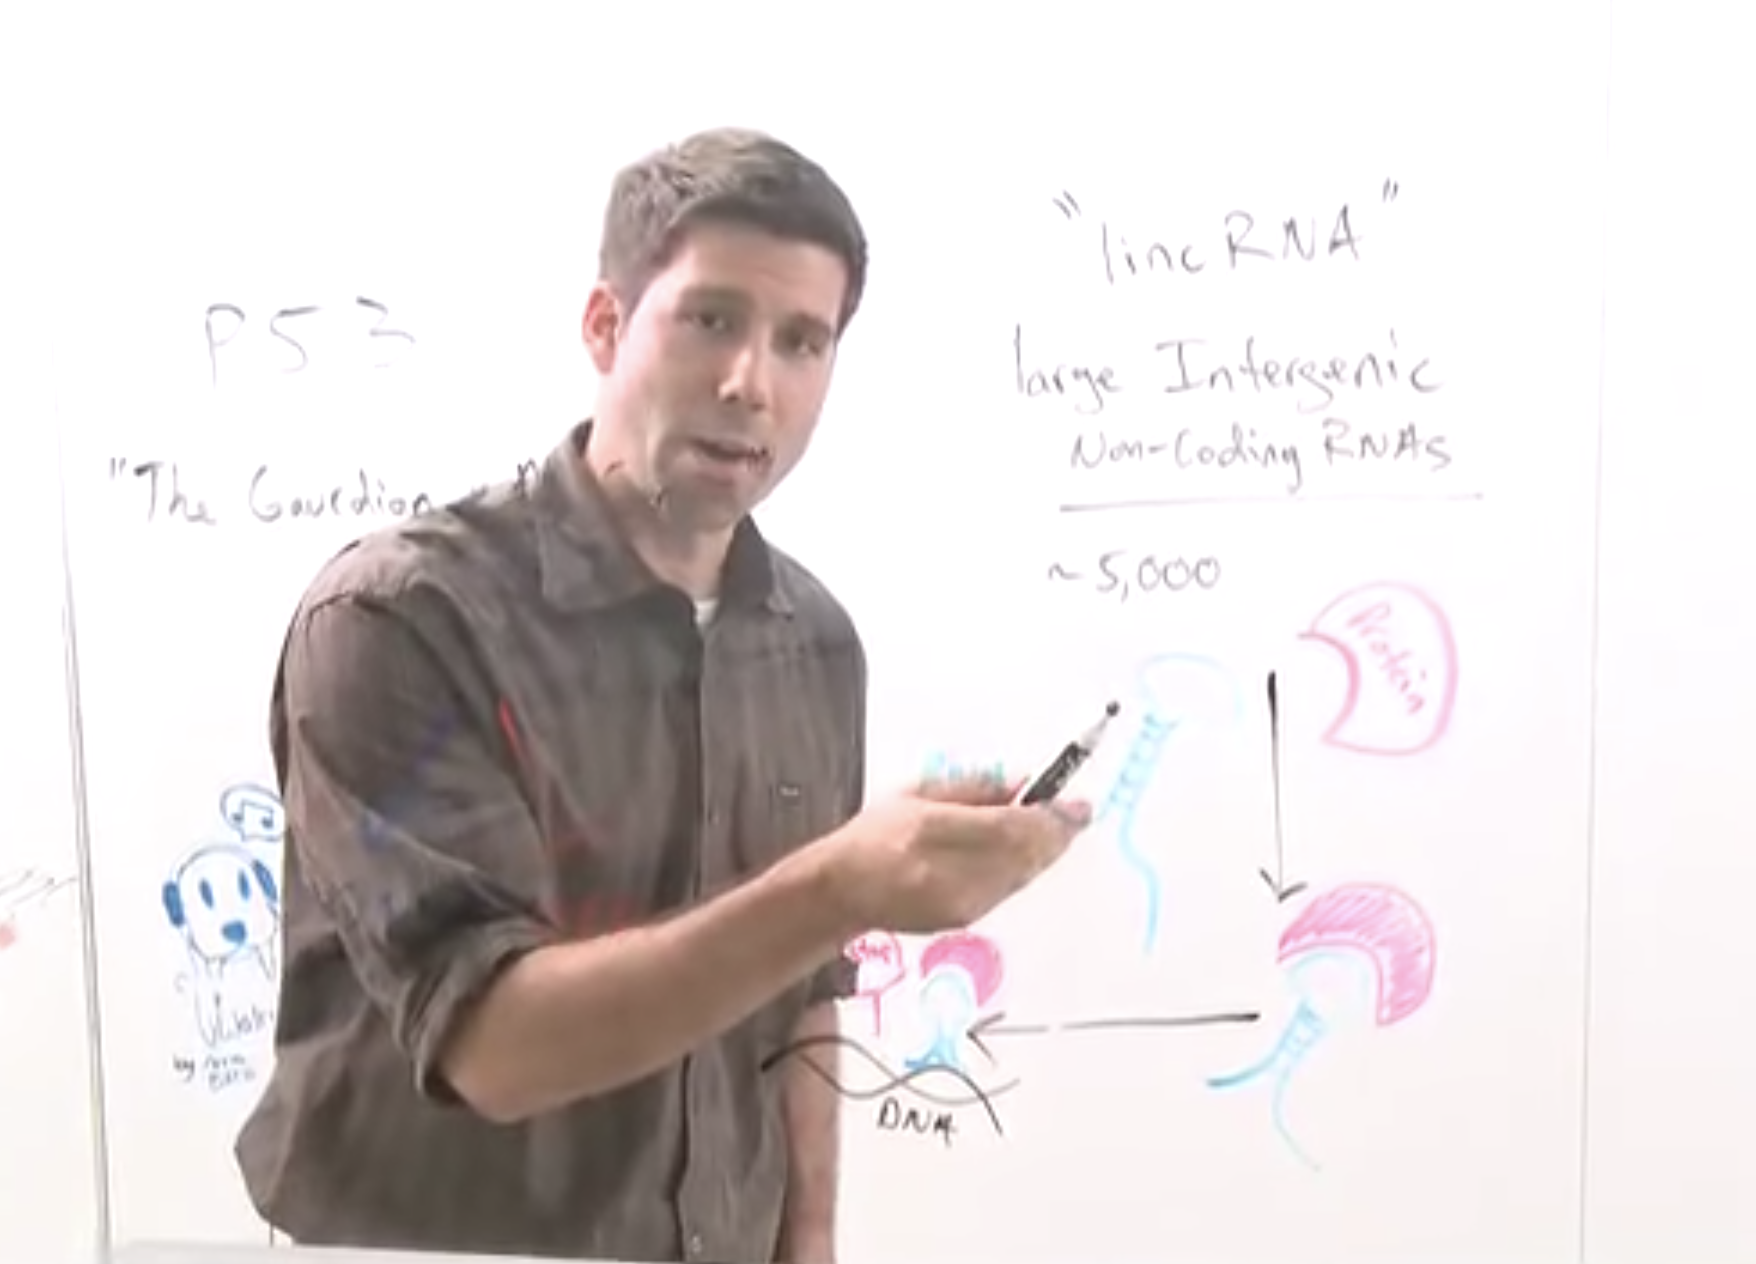 Image of John Rinn on whiteboard